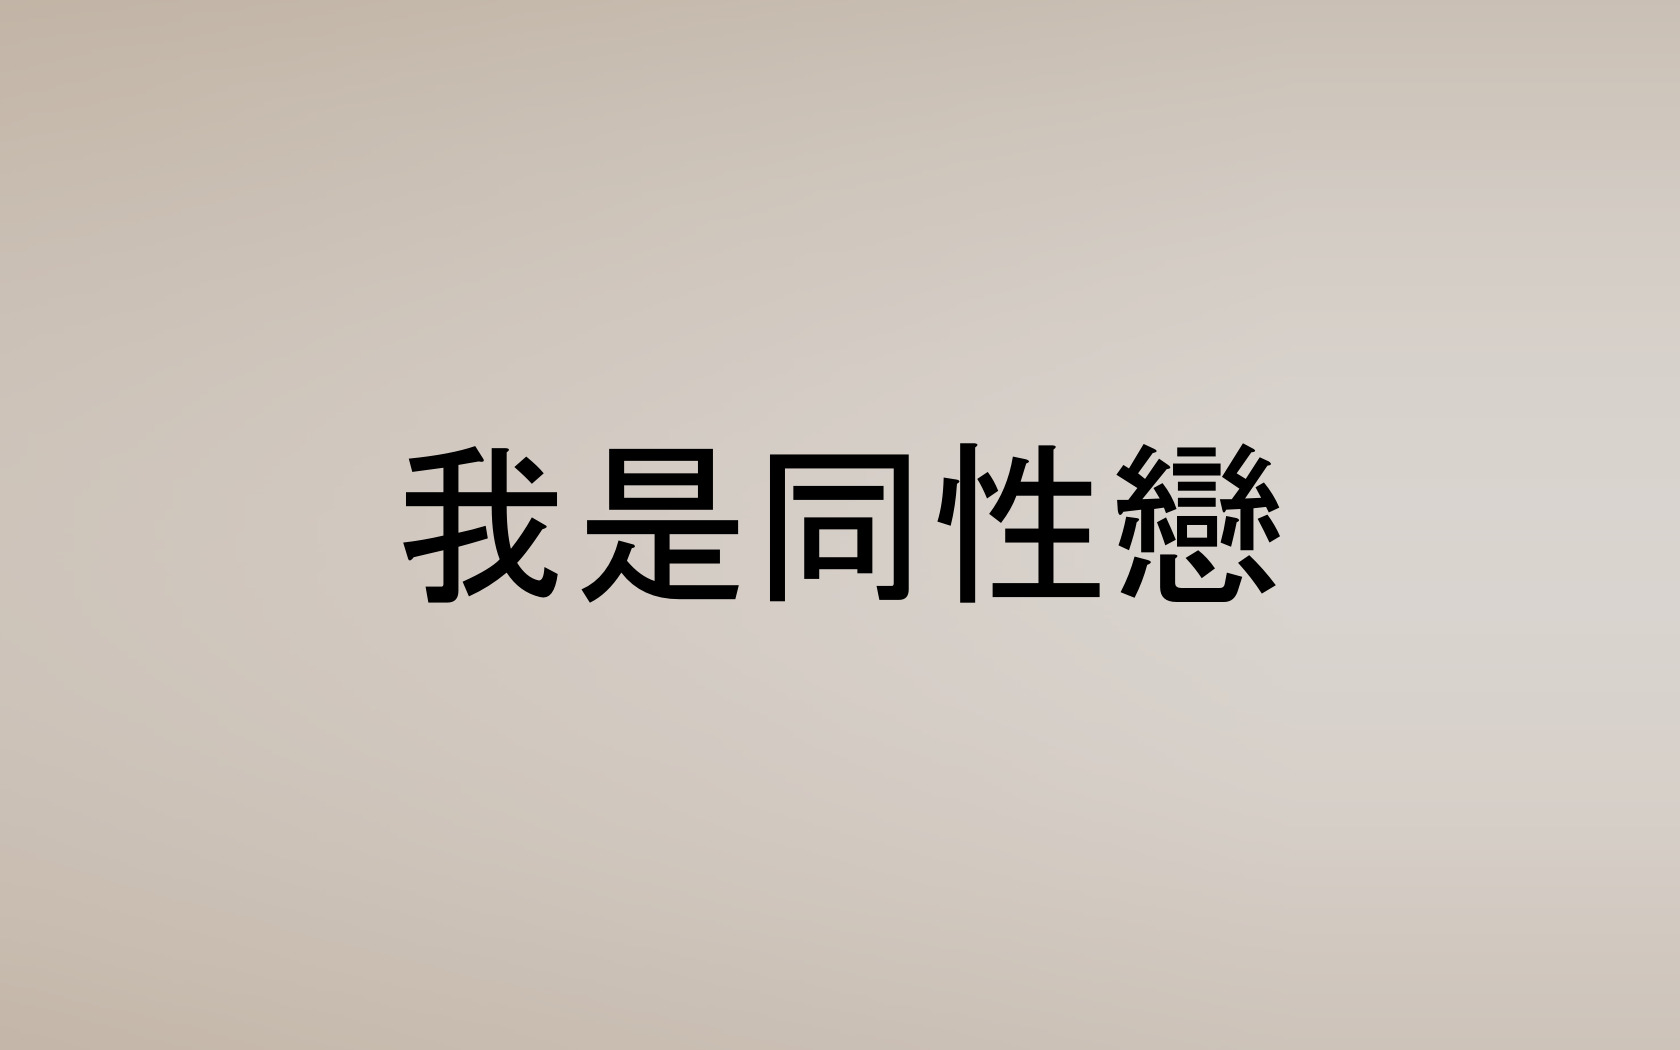 text Chinese HD Wallpaper